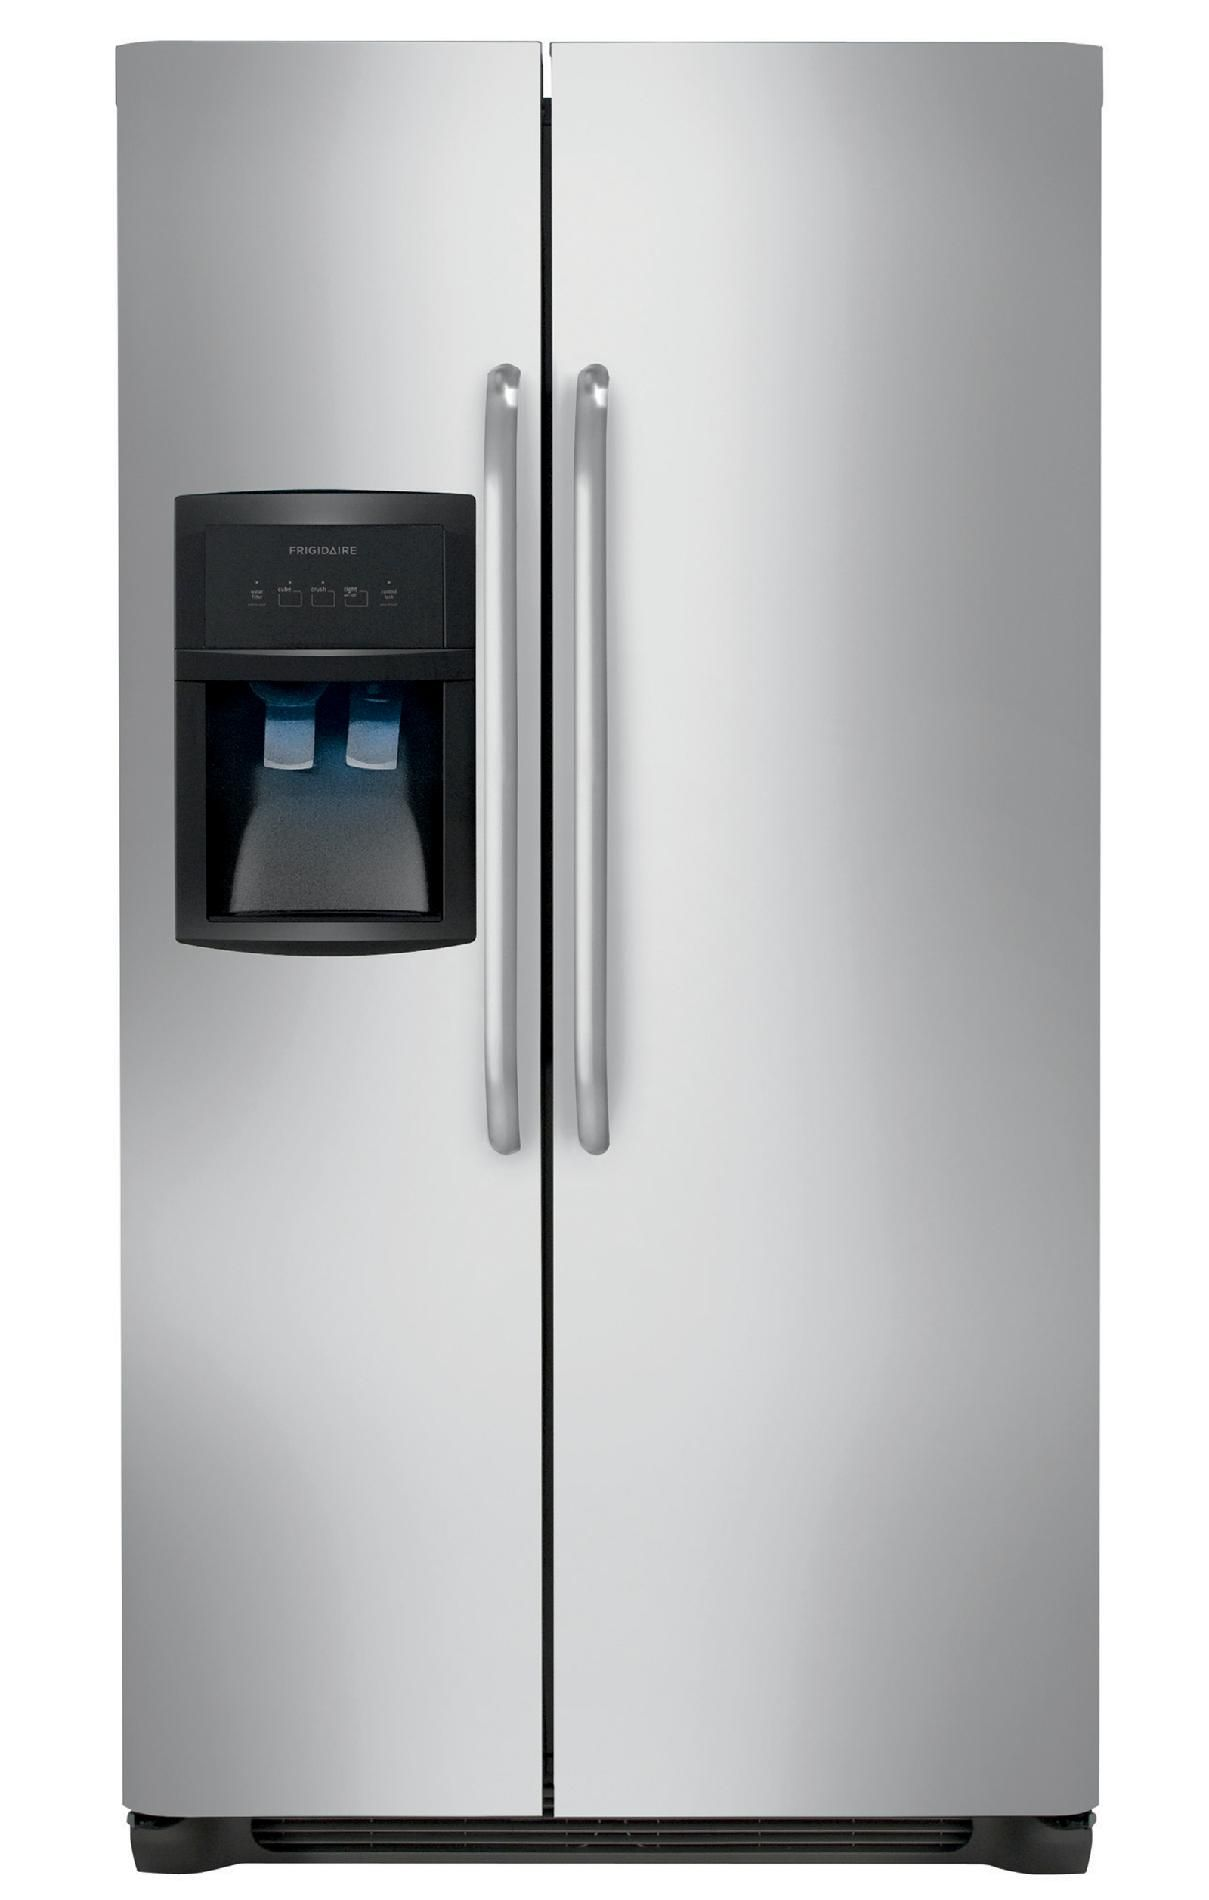 Frigidaire 22.6 cu. ft. Side-by-Side Refrigerator - Stainless Steel ...